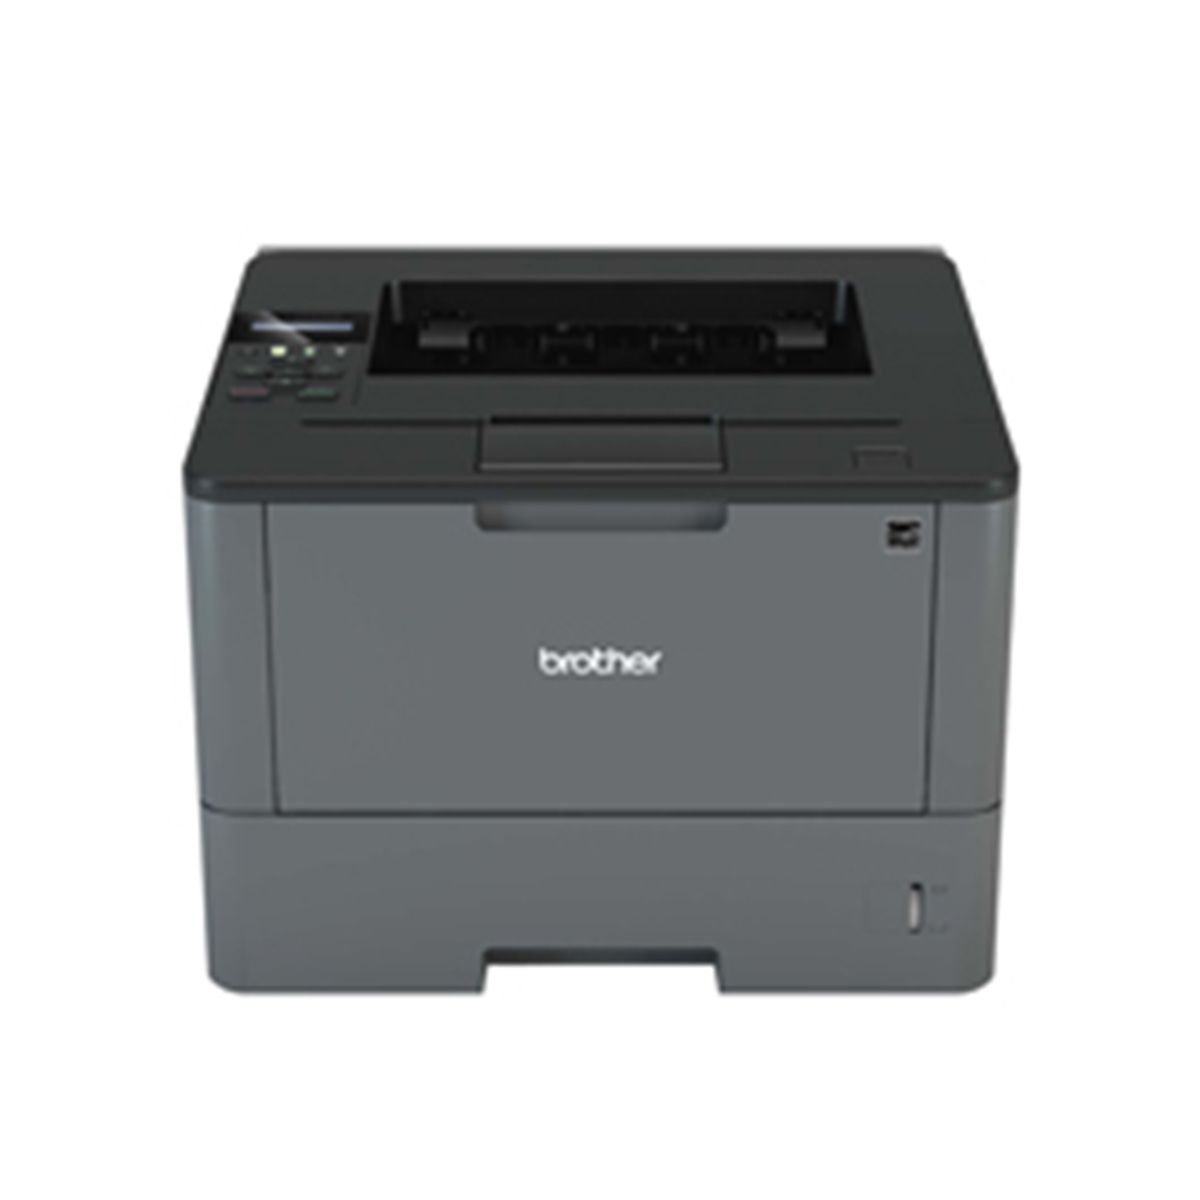 Brother HL-L5200DW A Grade - Refurbished Machine